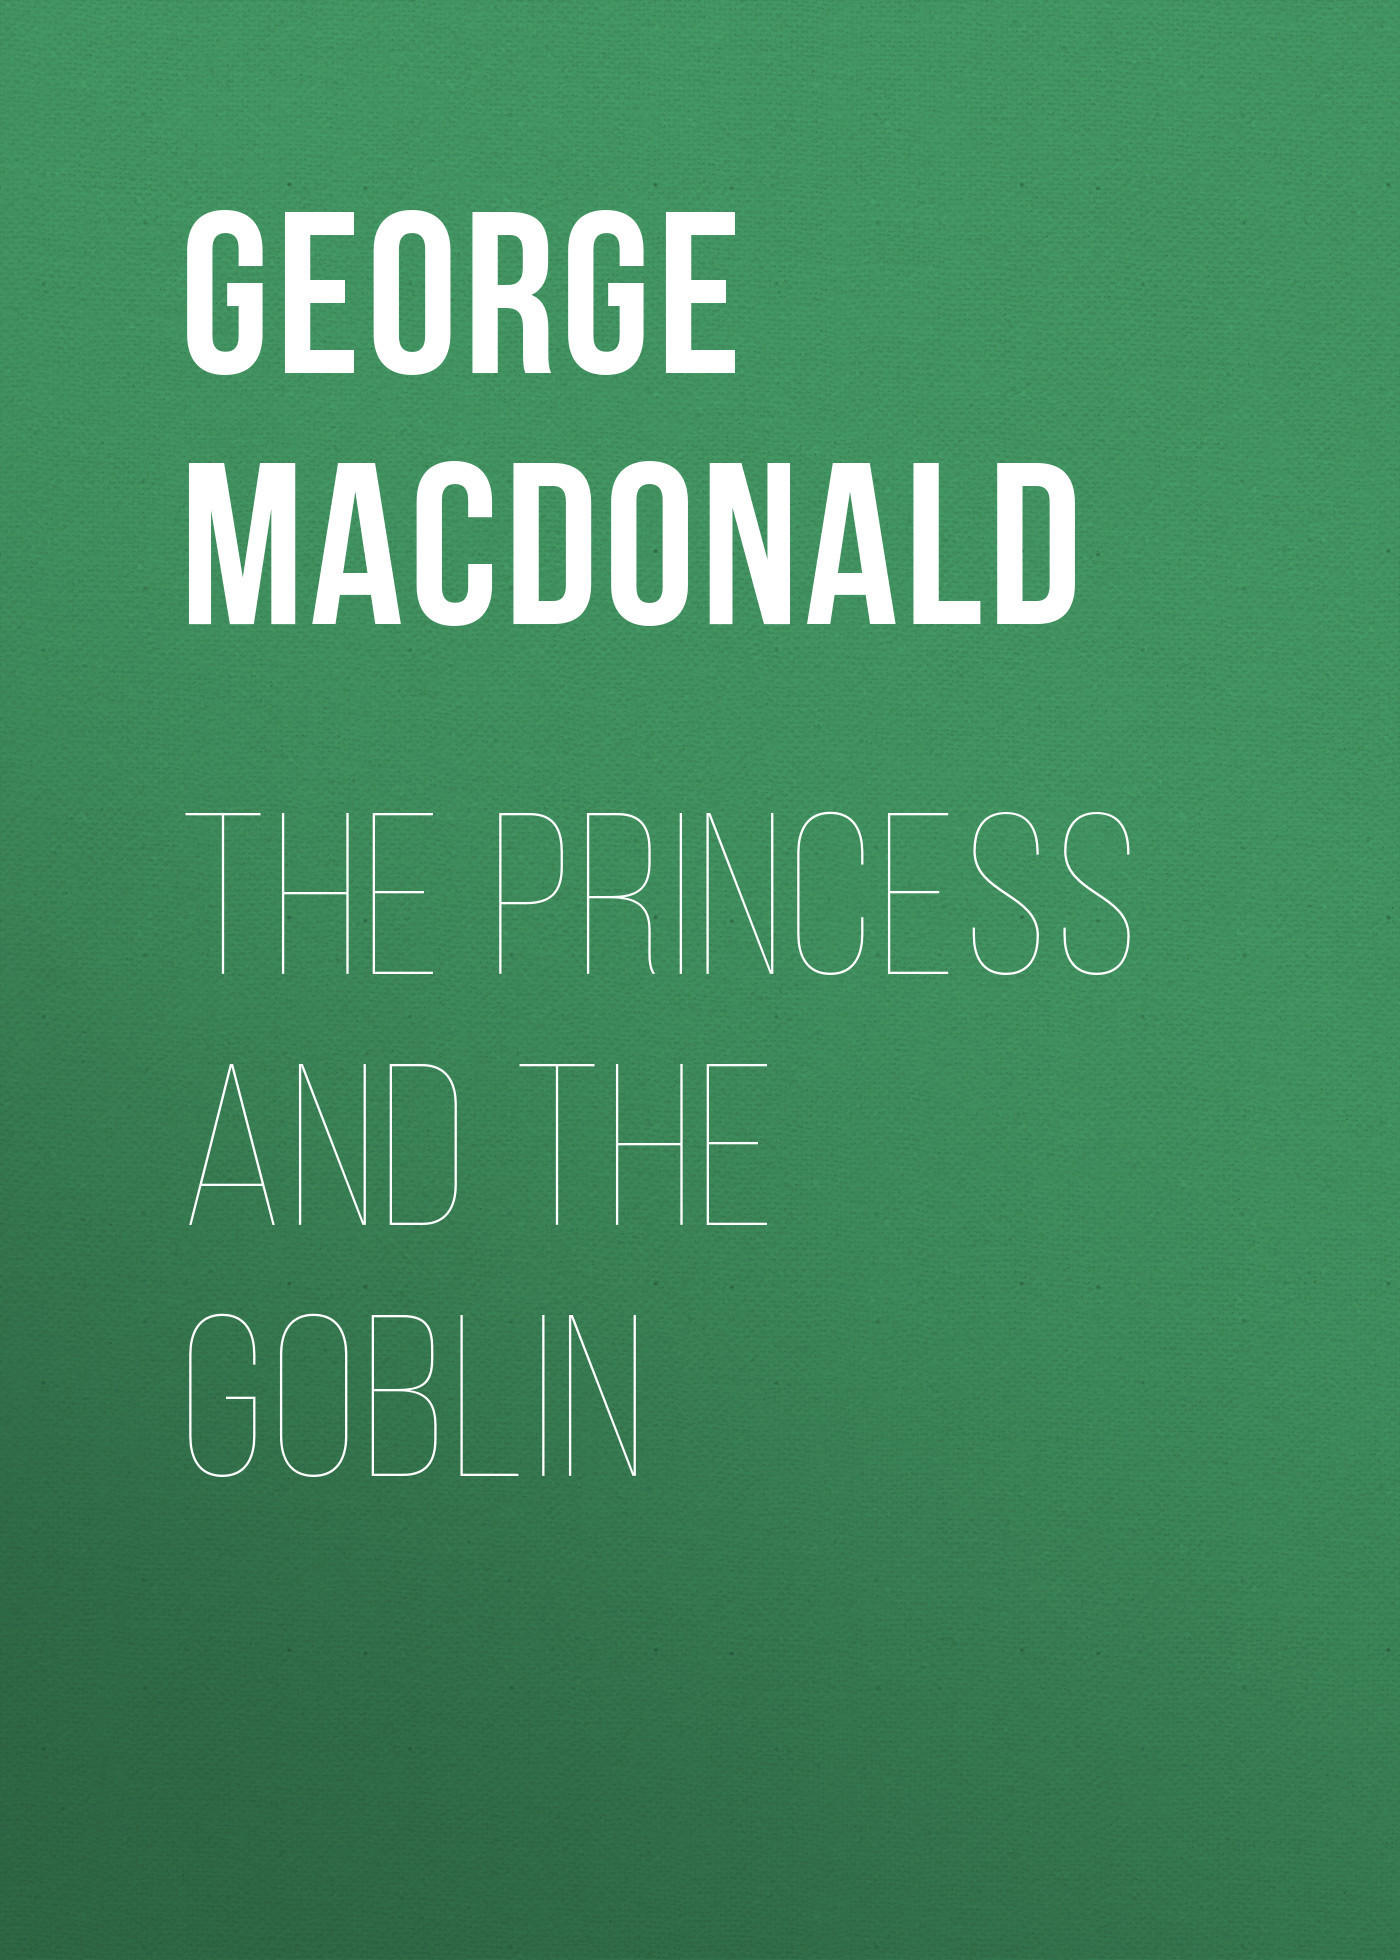 George MacDonald The Princess and the Goblin new 37008 561pcs girl friends princess anna and the princess castle building kit blocks bricks toys for children gift brinquedos